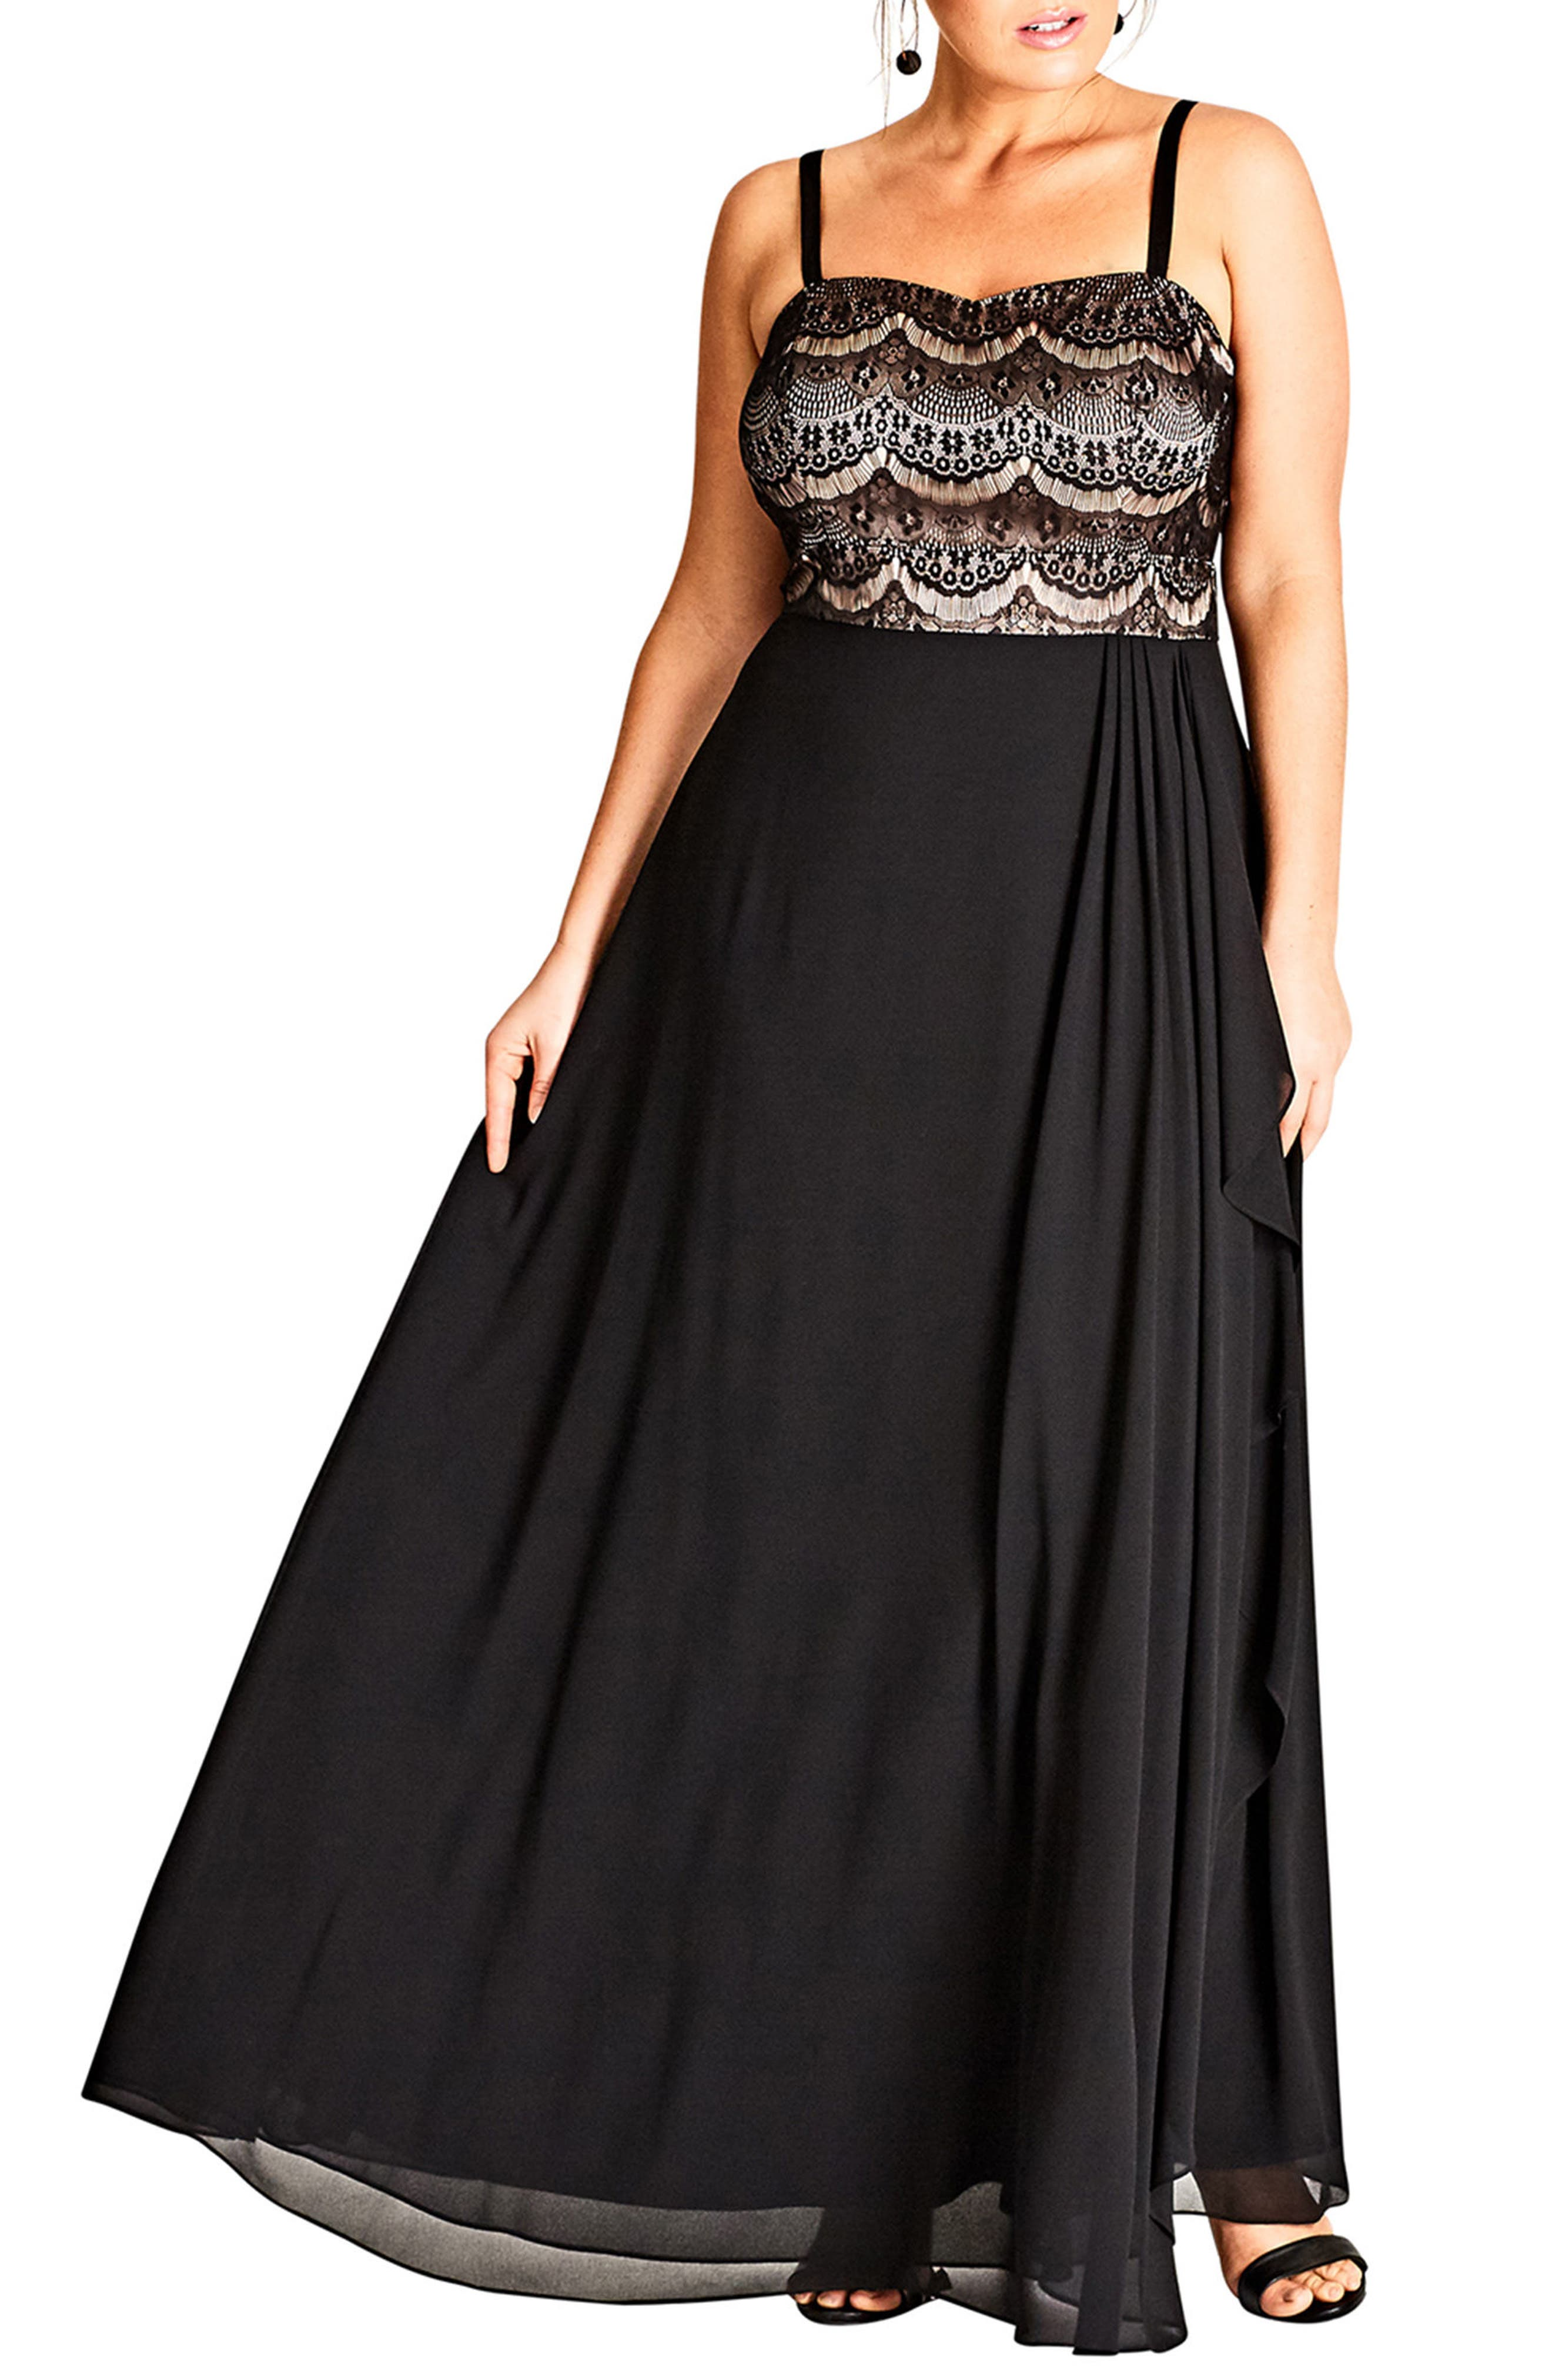 Eyelash Ebony Lace & Chiffon Gown,                             Main thumbnail 1, color,                             BLACK